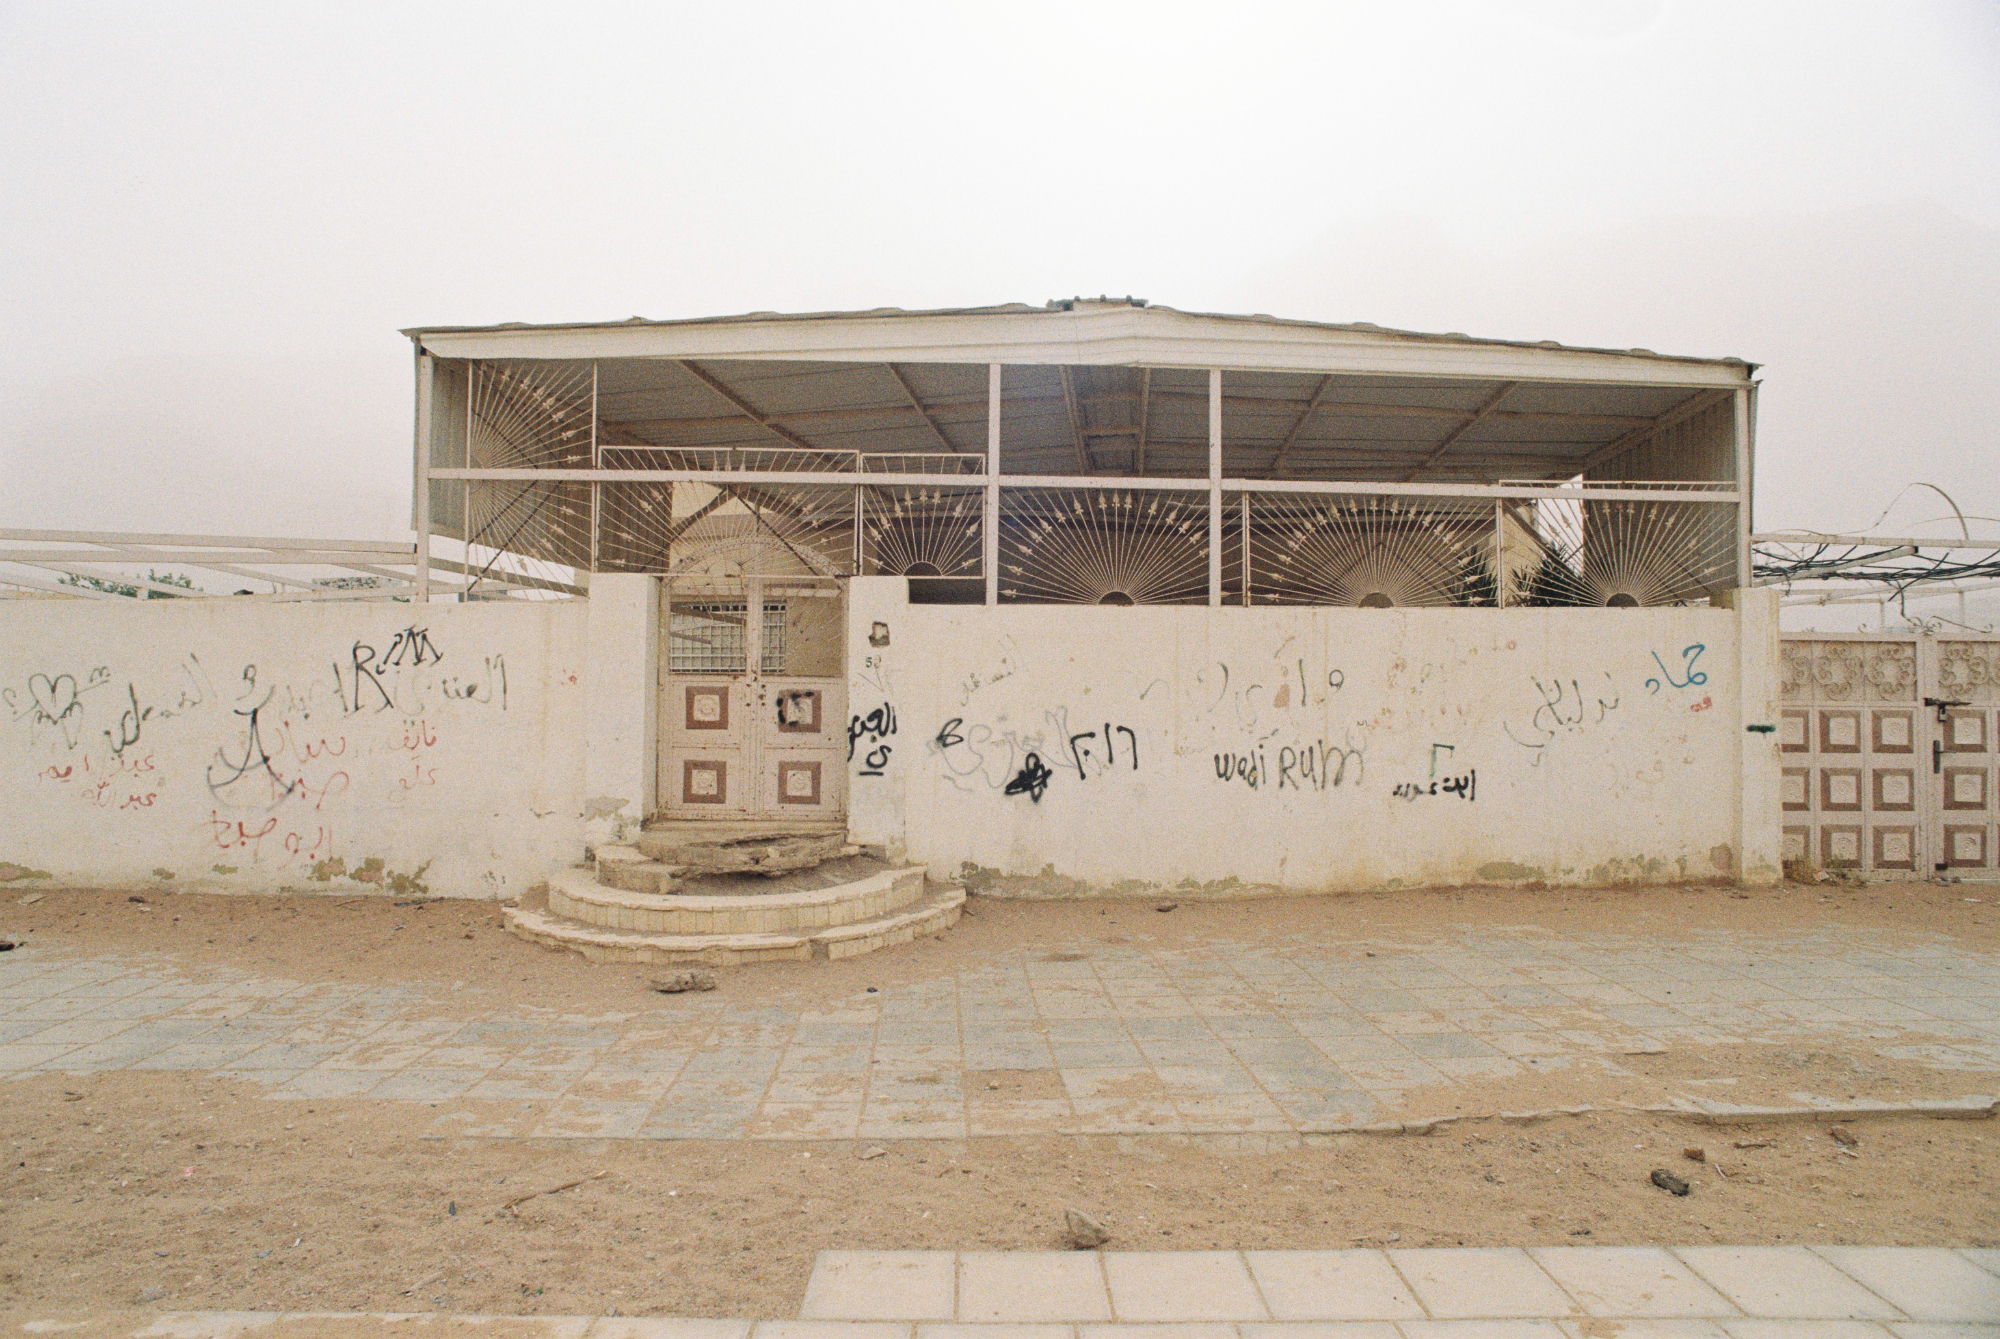 An abandoned building in 'Rum' Village. Home to several hundred Zalabia Bedouin people, the village-scape is a mixture of concrete homes and traditional tents.